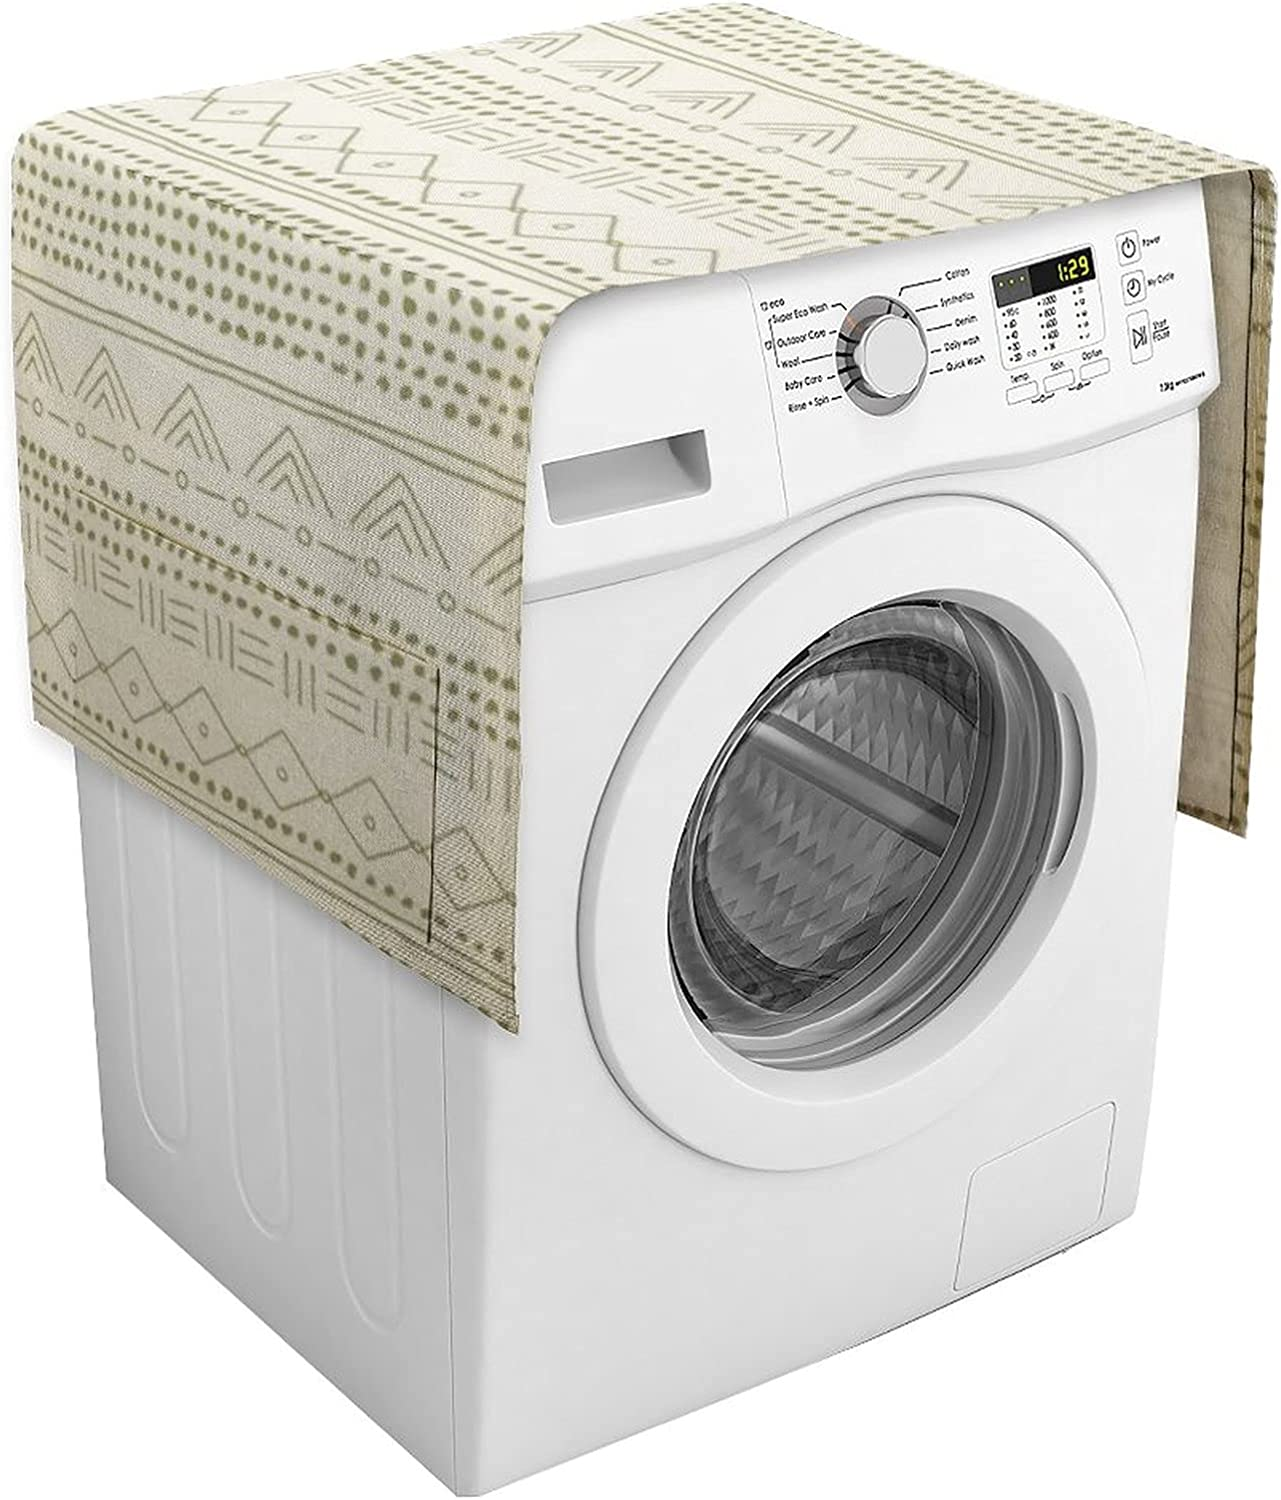 Multi-Purpose Washing Machine Covers Protector Washer Daily bargain sold out sale Appliance